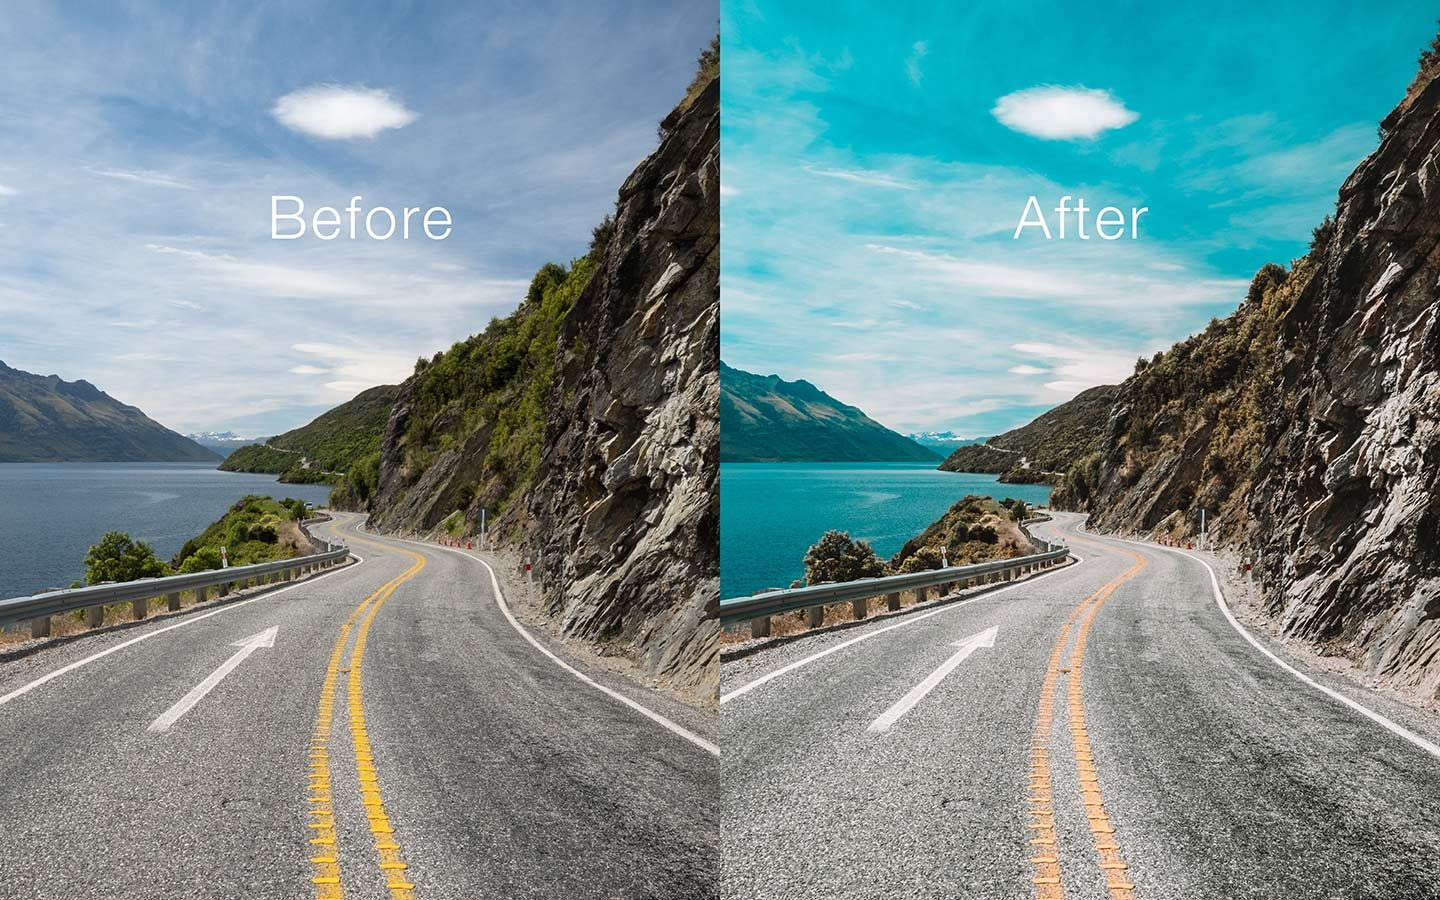 Lightroom presets are an extremely useful function within Lightroom. This photo shows the effect of using the Bali preset can have on your images.